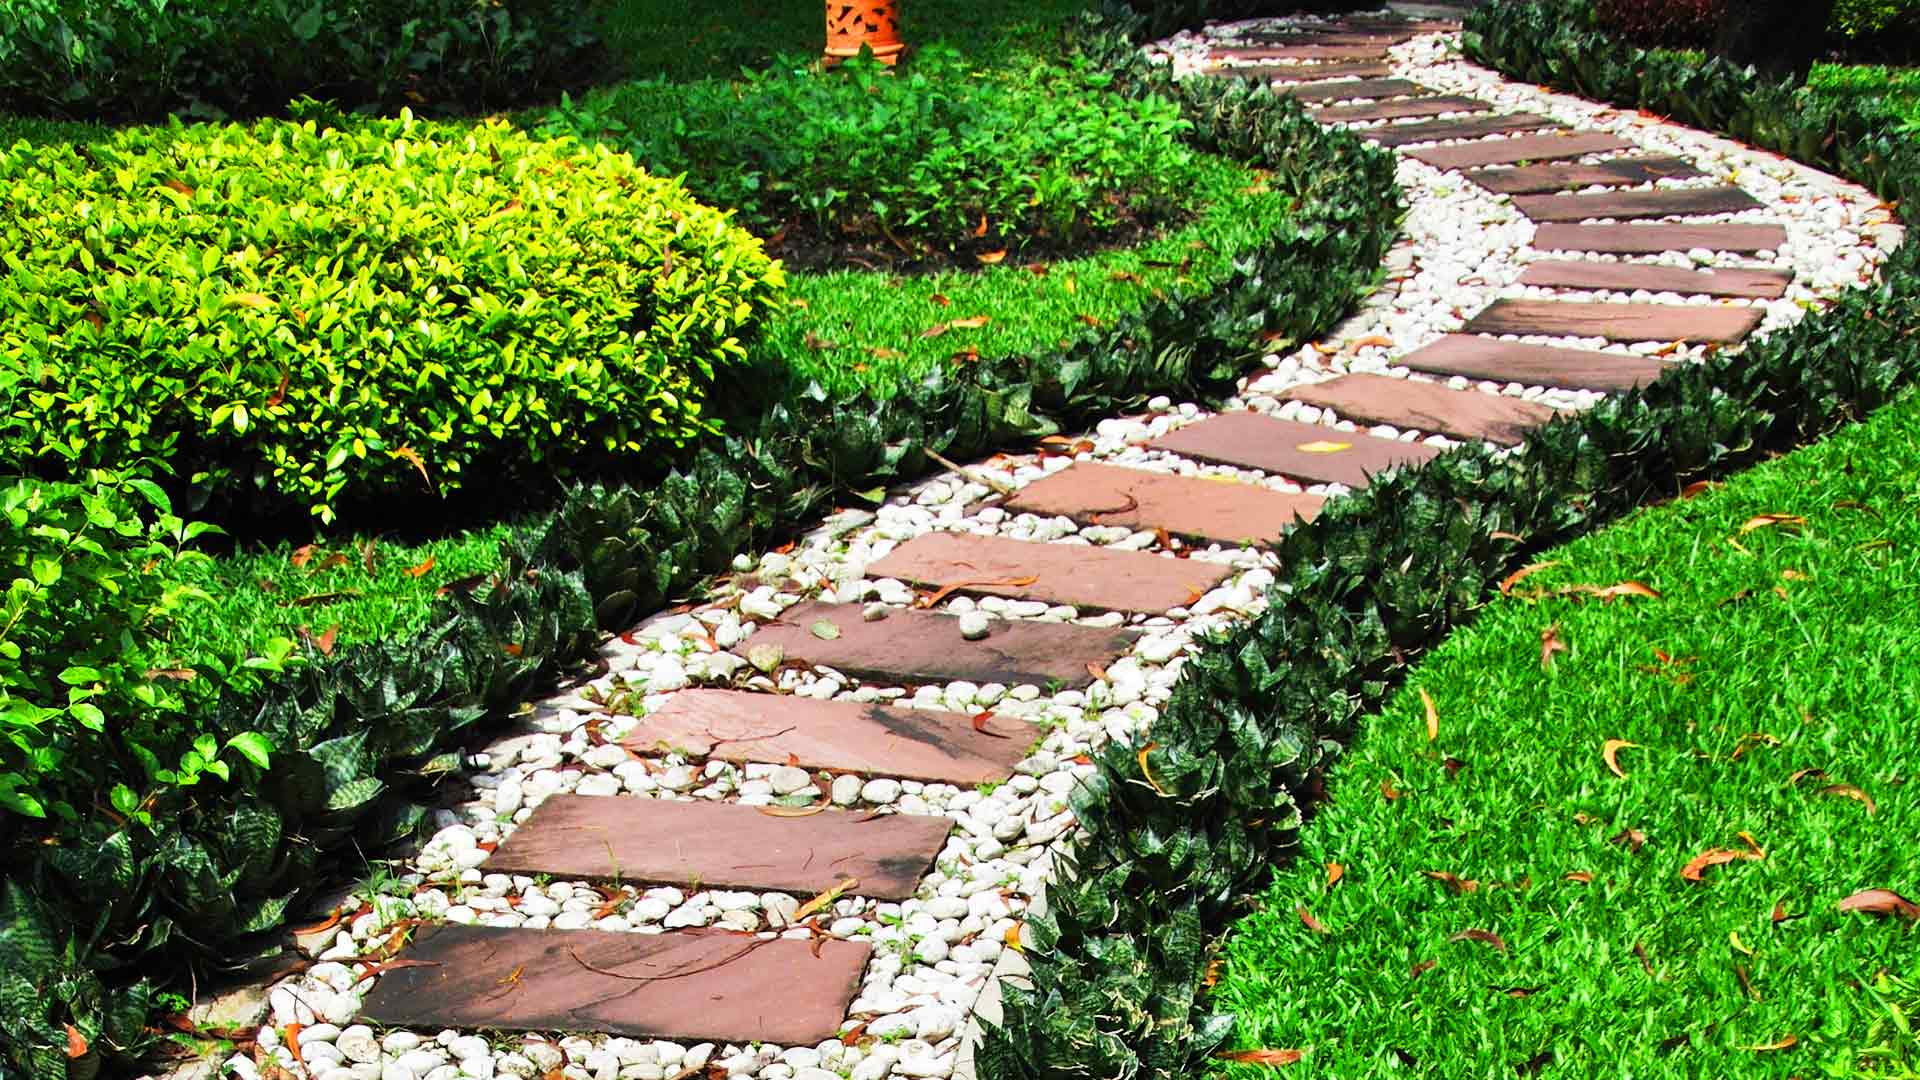 The articles of our blog are a pathway to useful information about lawn and landscape maintenance.